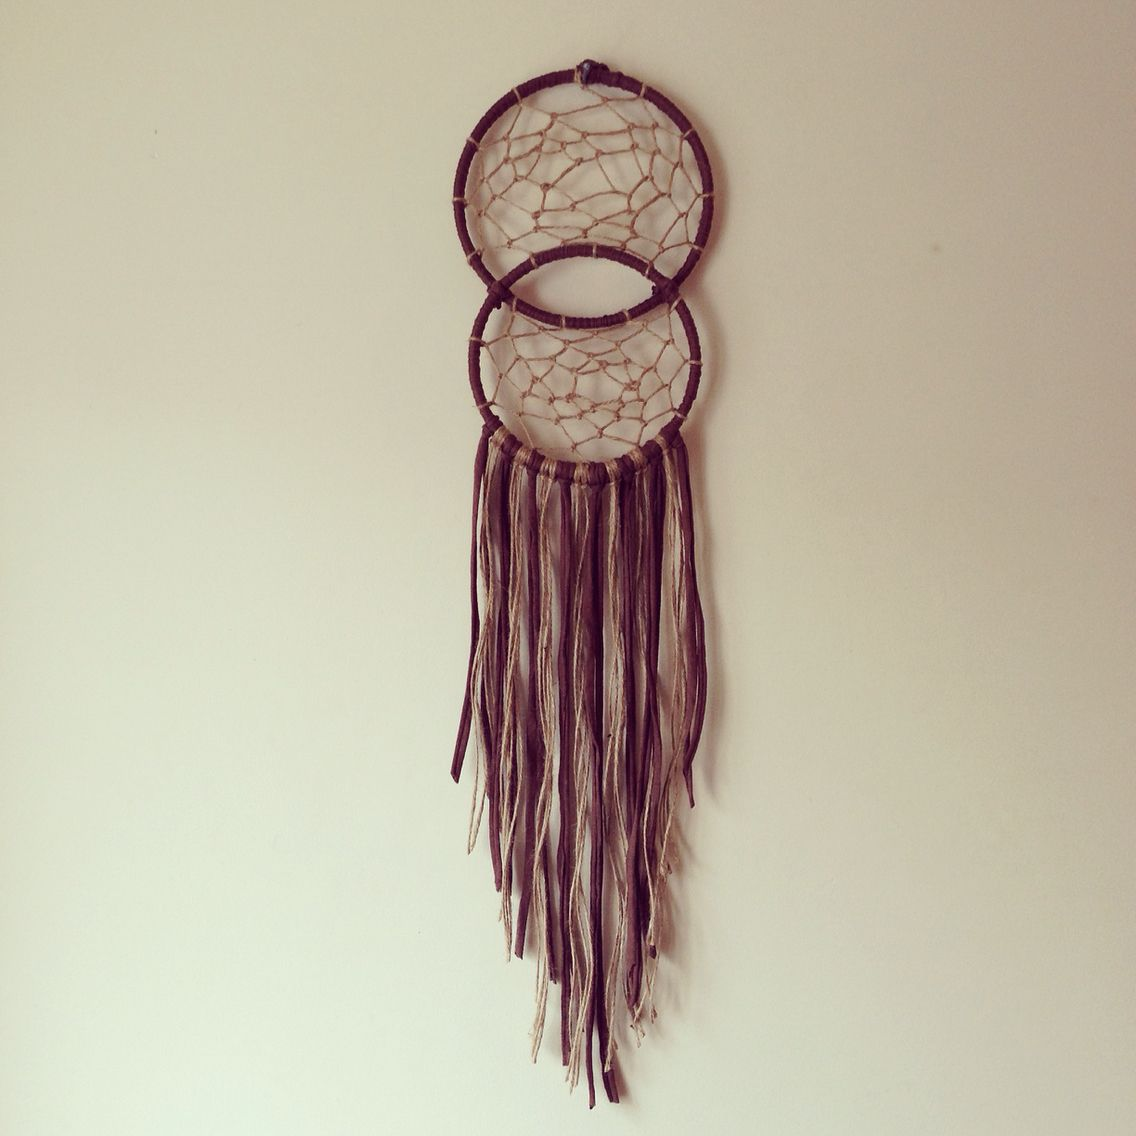 How Are Dream Catchers Made Soul connecting dream catcher made from jute twine and brown 18